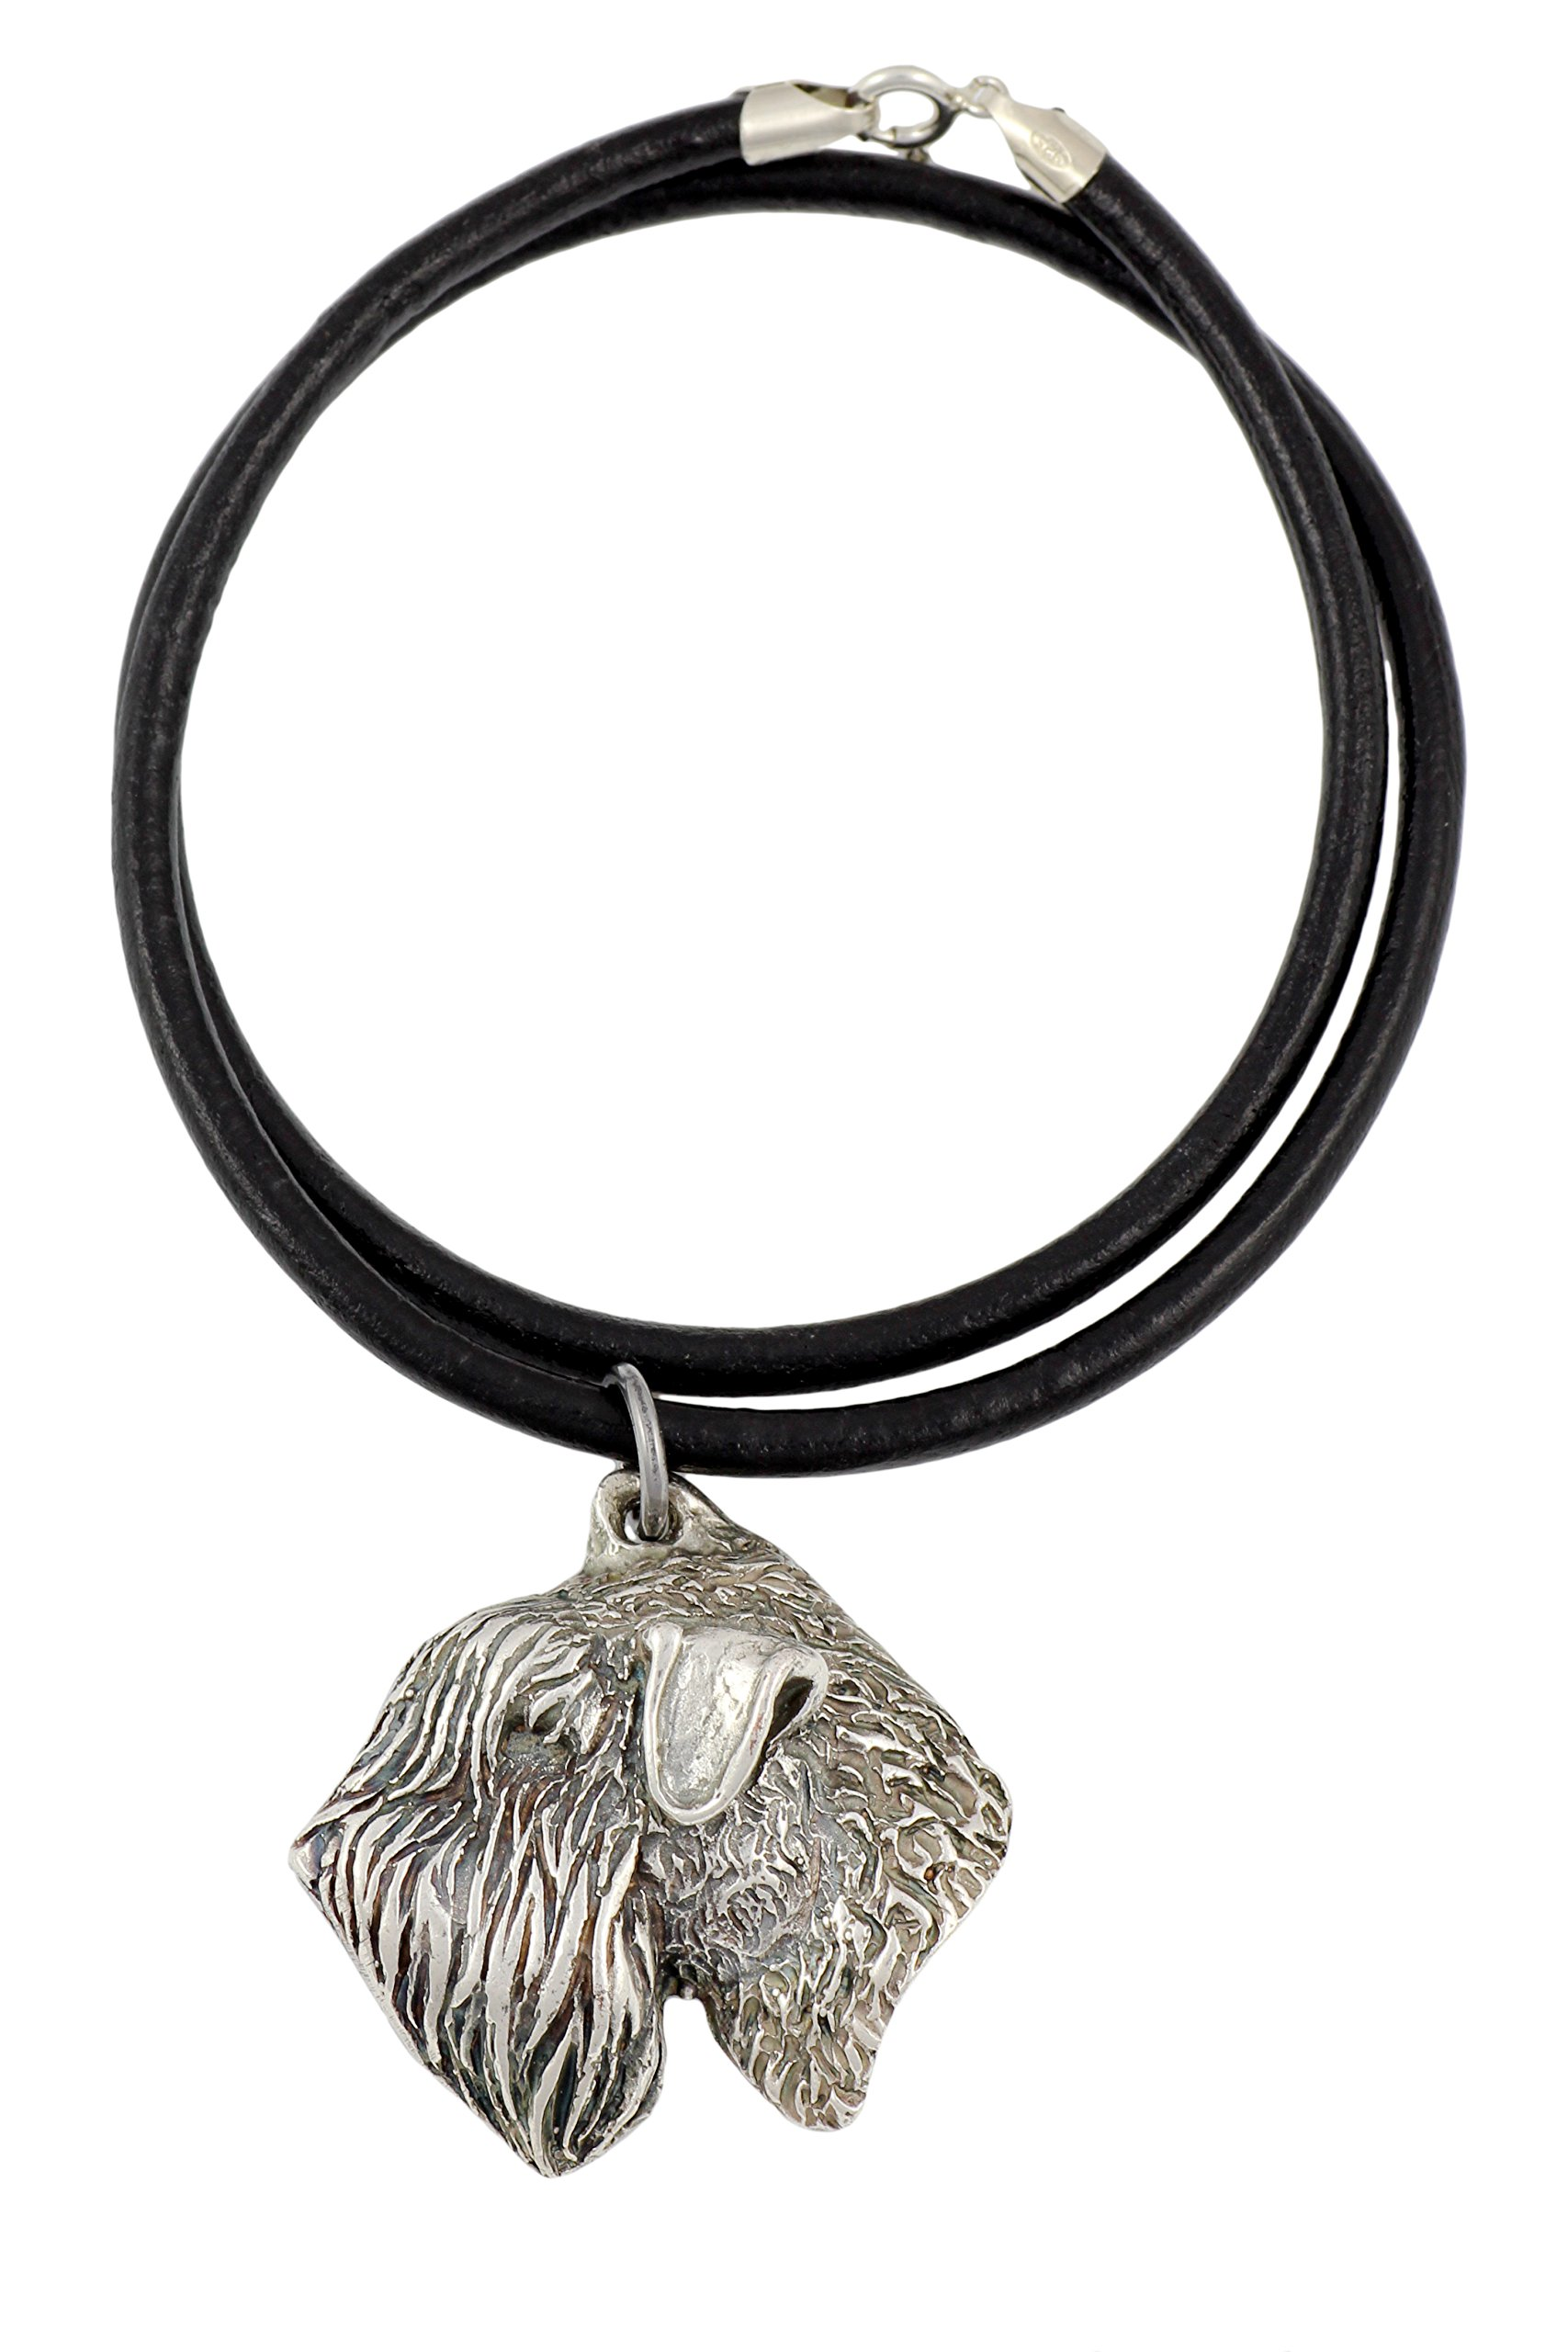 Soft-coated Wheatan Terrier , Silver Hallmark 925, Dog Silver Necklaces, Limited Edition, Artdog